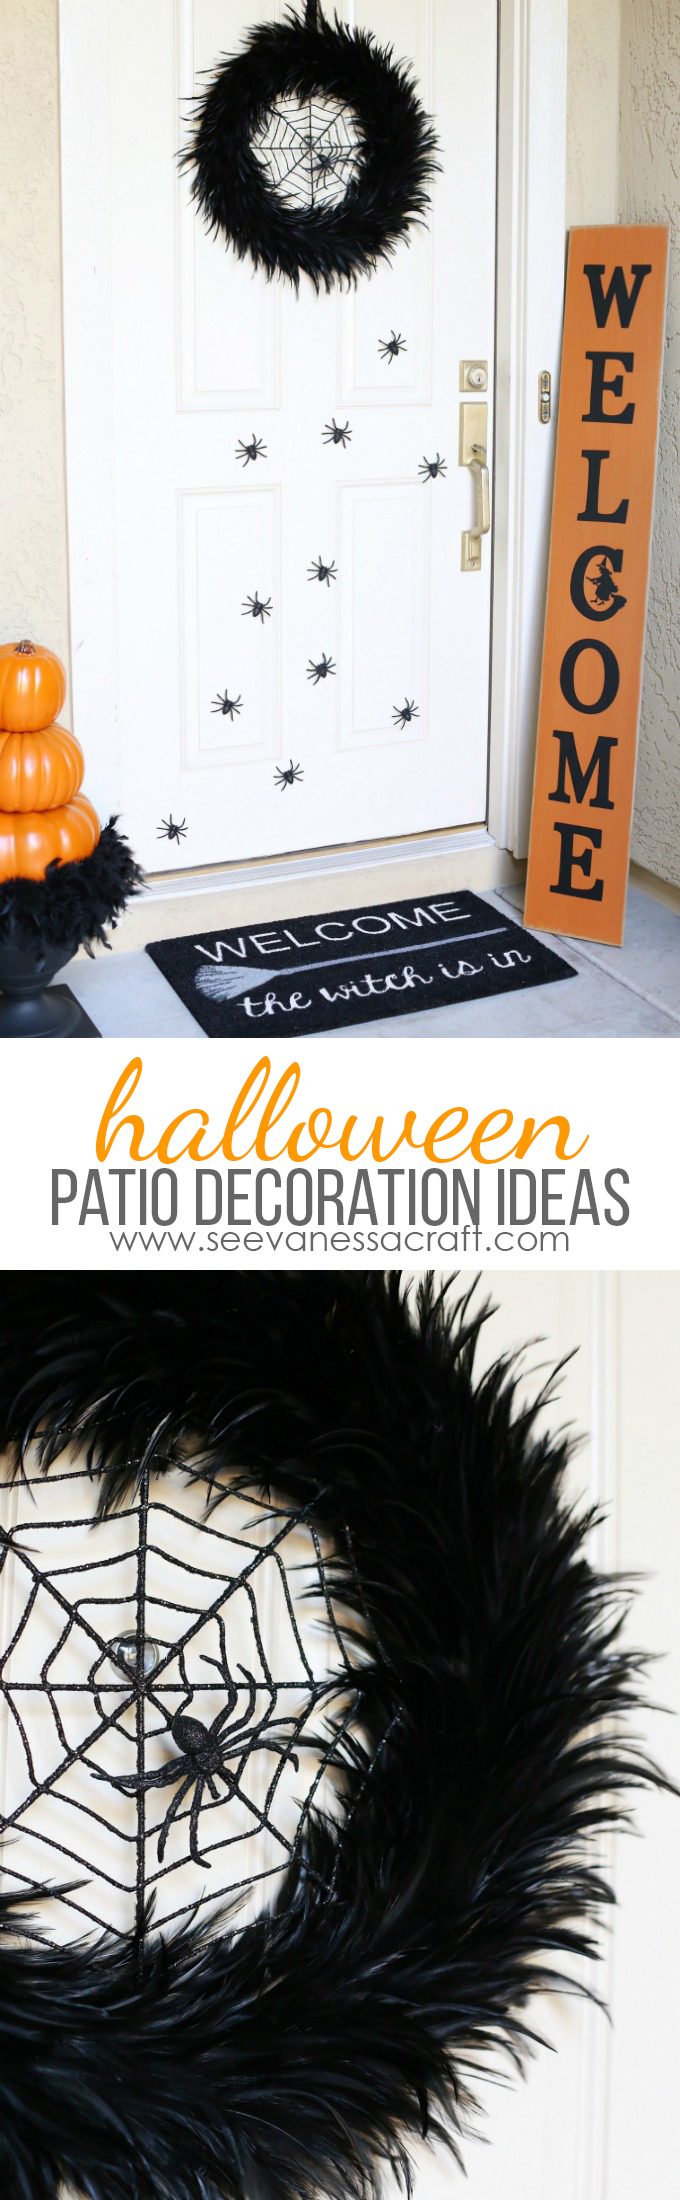 Halloween Patio Decoration Ideas